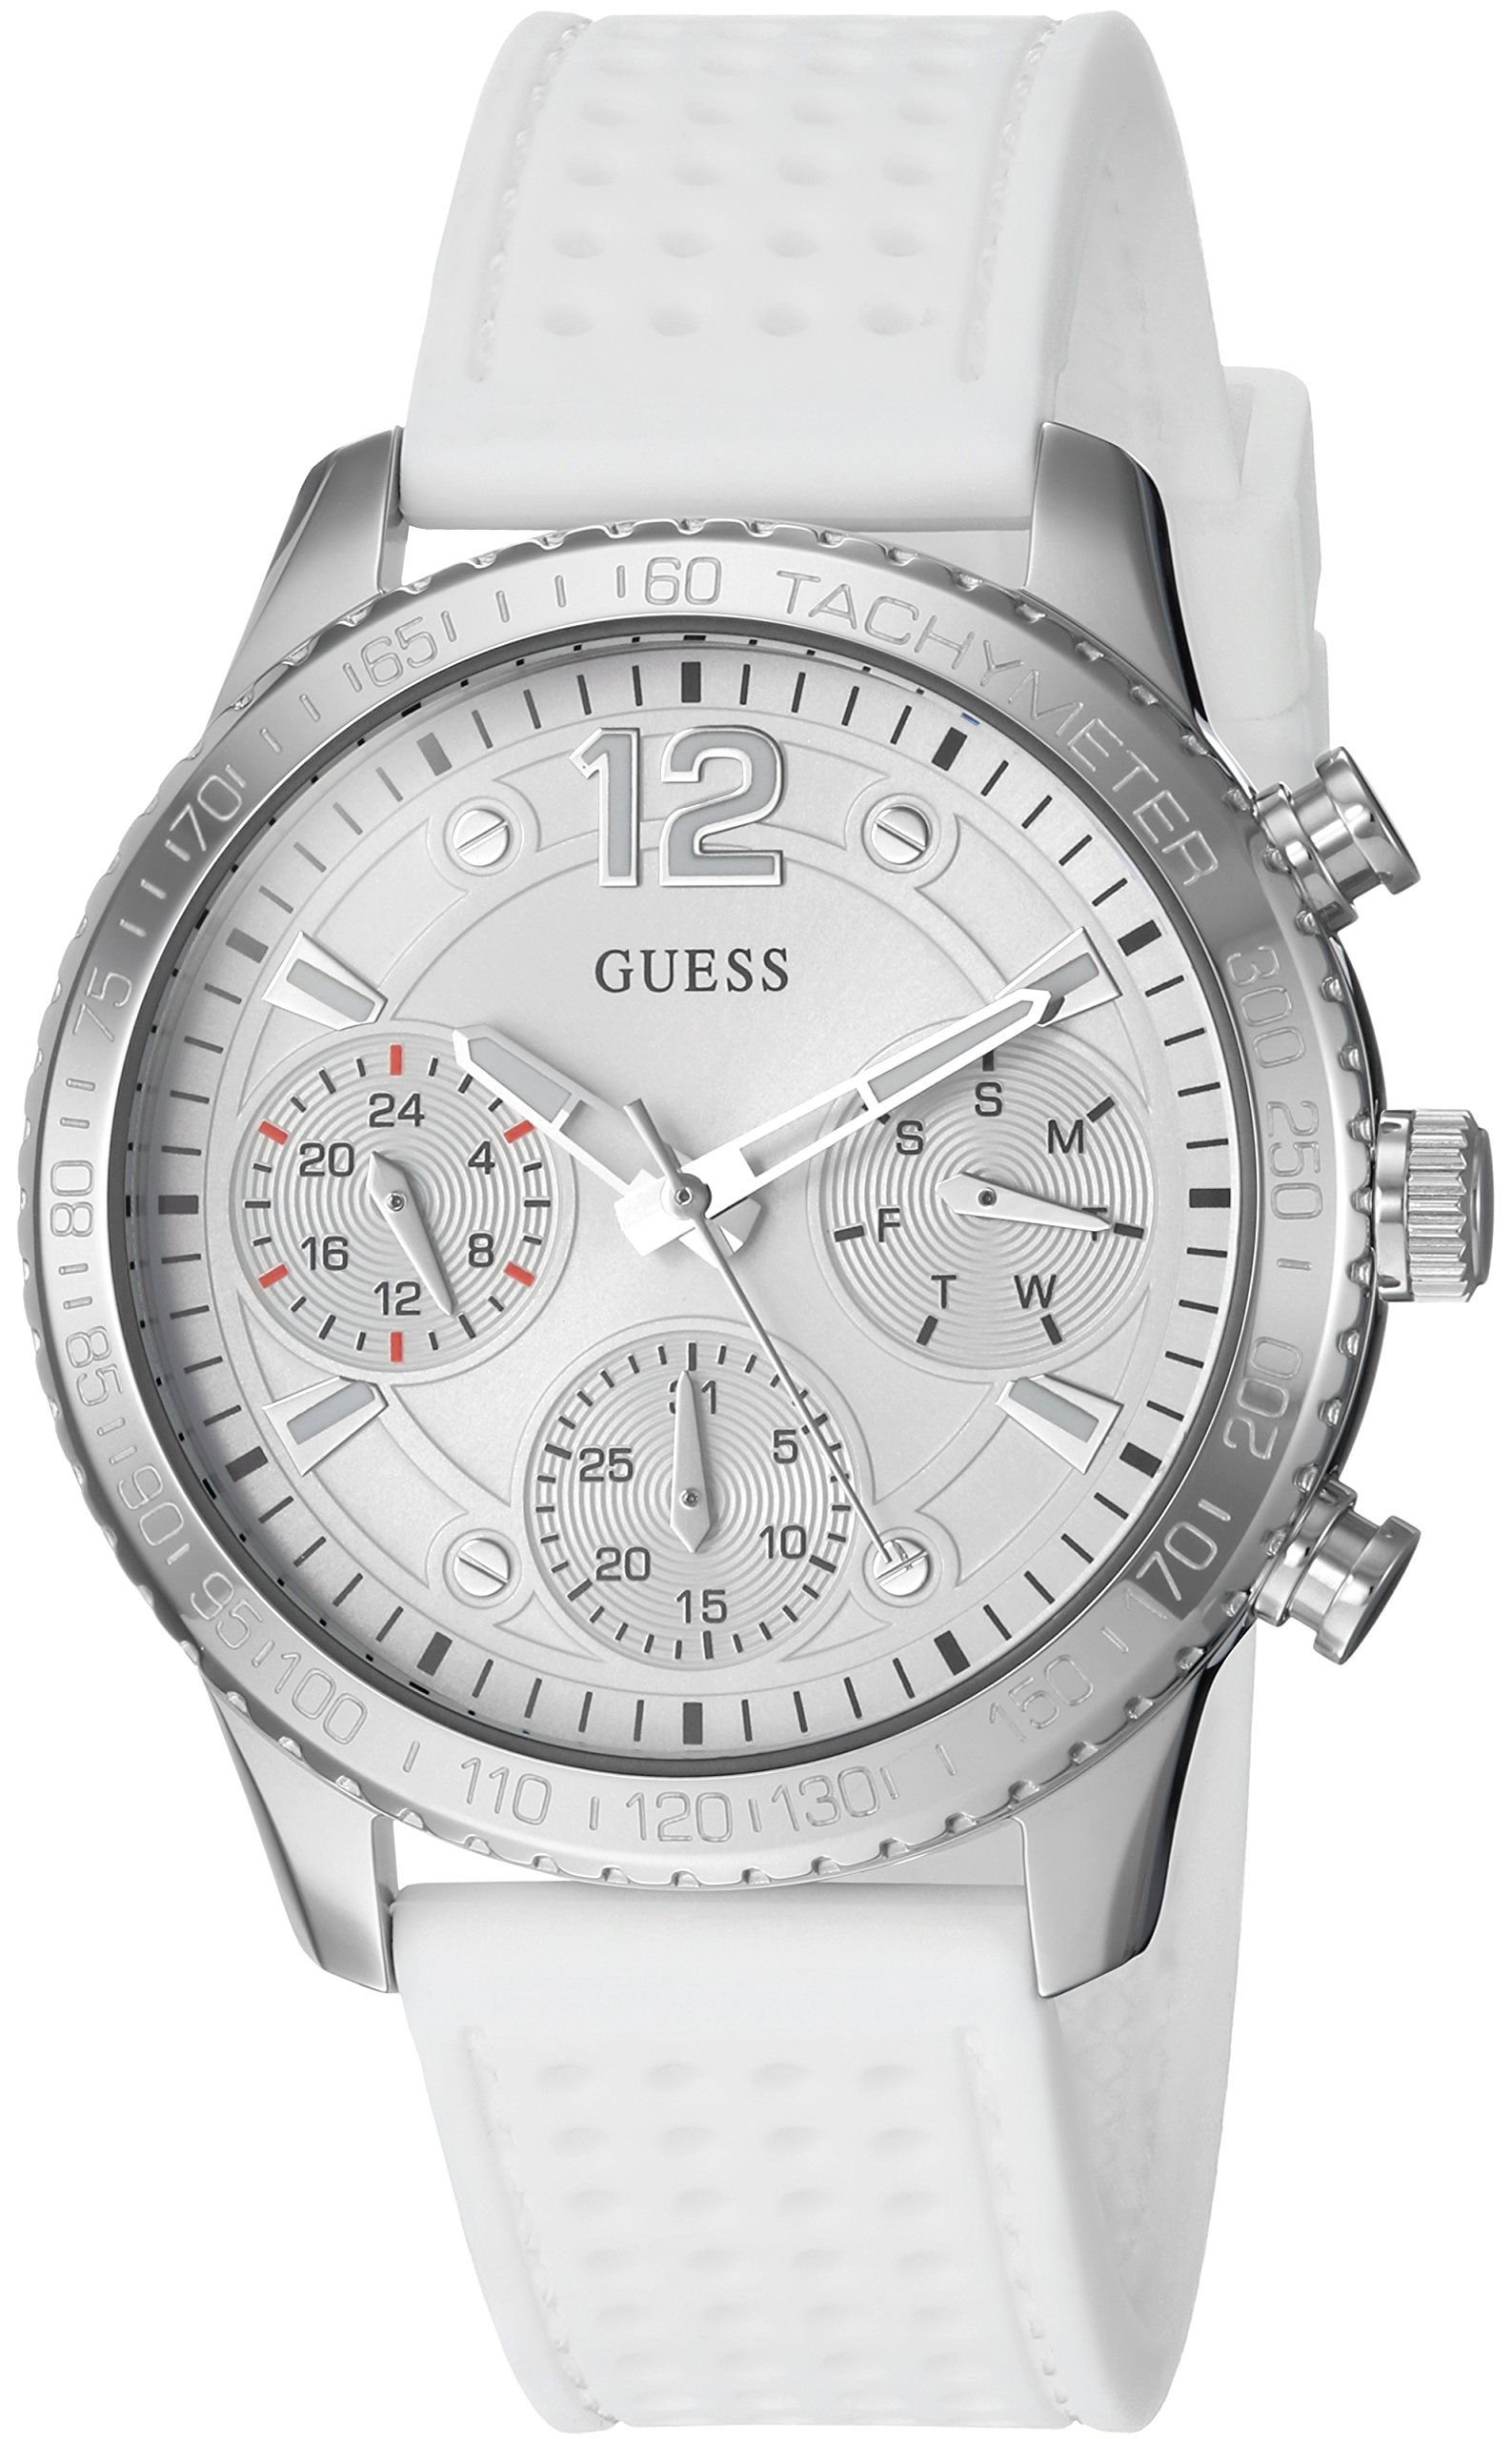 GUESS Women's Stainless Steel Multifunction Silicone Casual Watch, Color: White (Model: U1025L1)